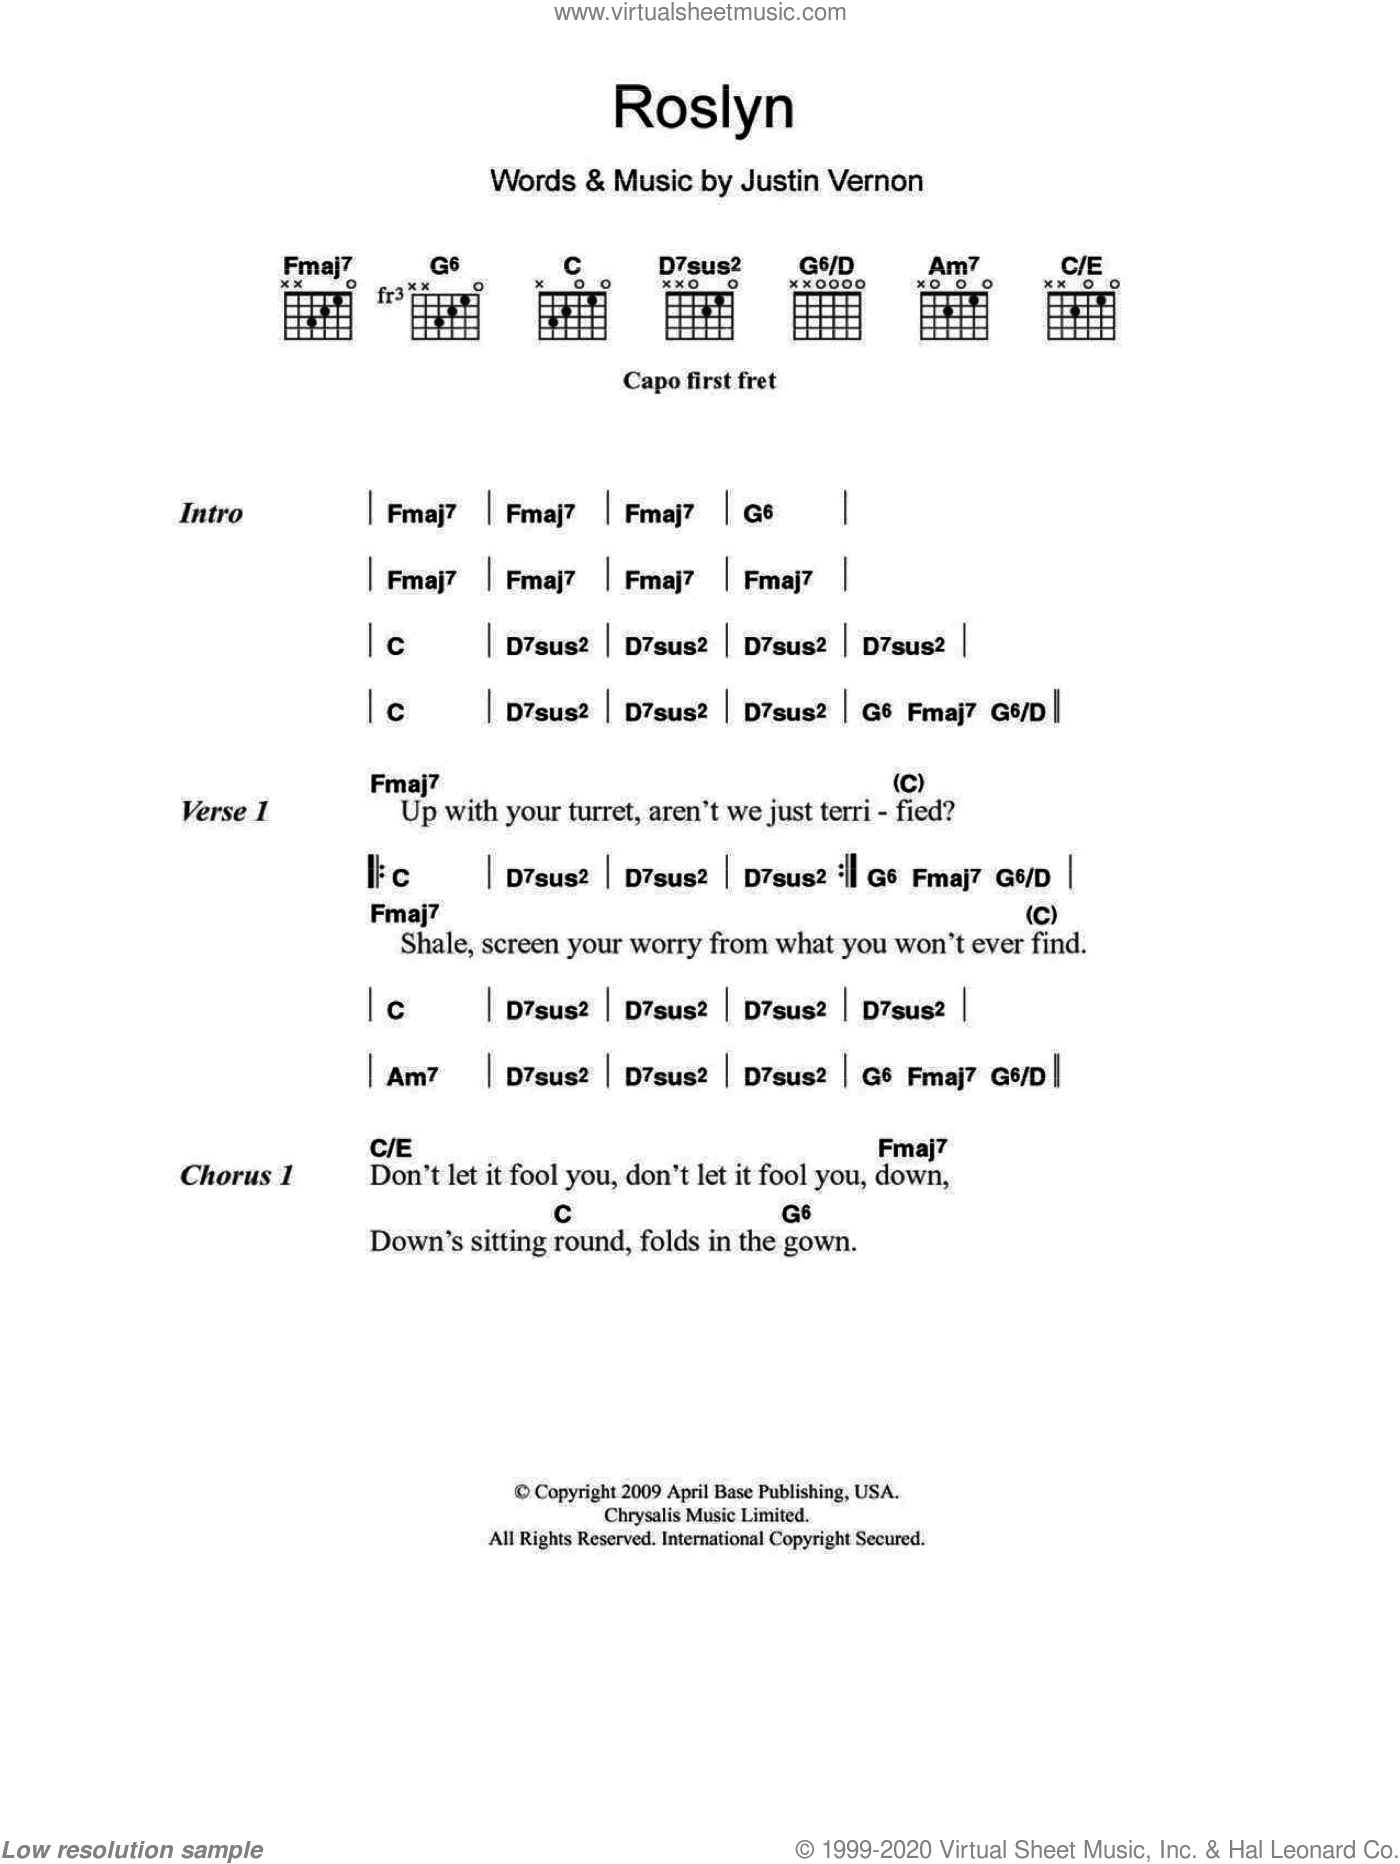 Roslyn sheet music for guitar (chords, lyrics, melody) by Justin Vernon